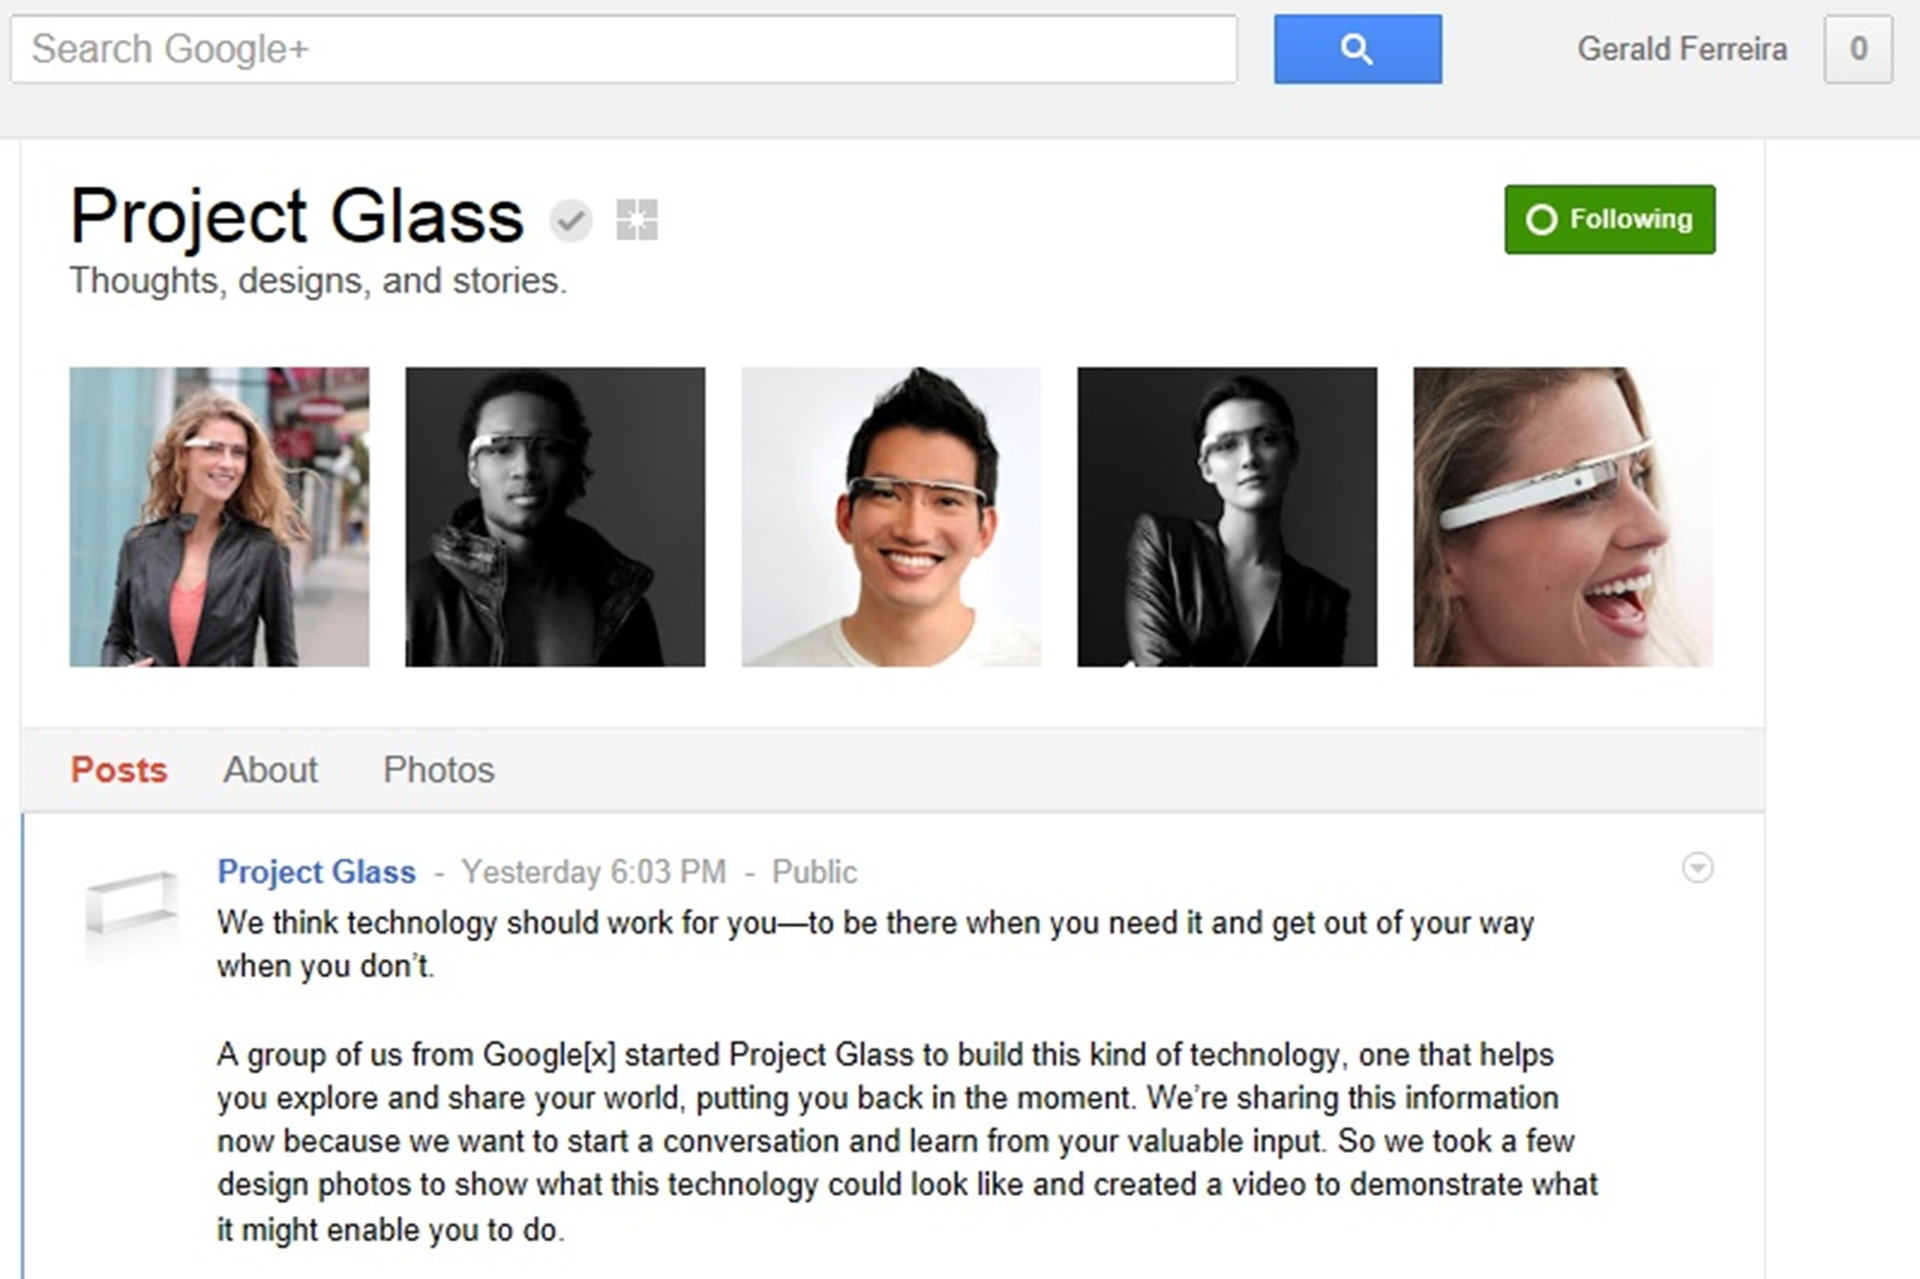 google glass project video Google has revealed its project glass is working on developing augmented reality glasses that would put a wealth of information at their fingertips - or at the end of.